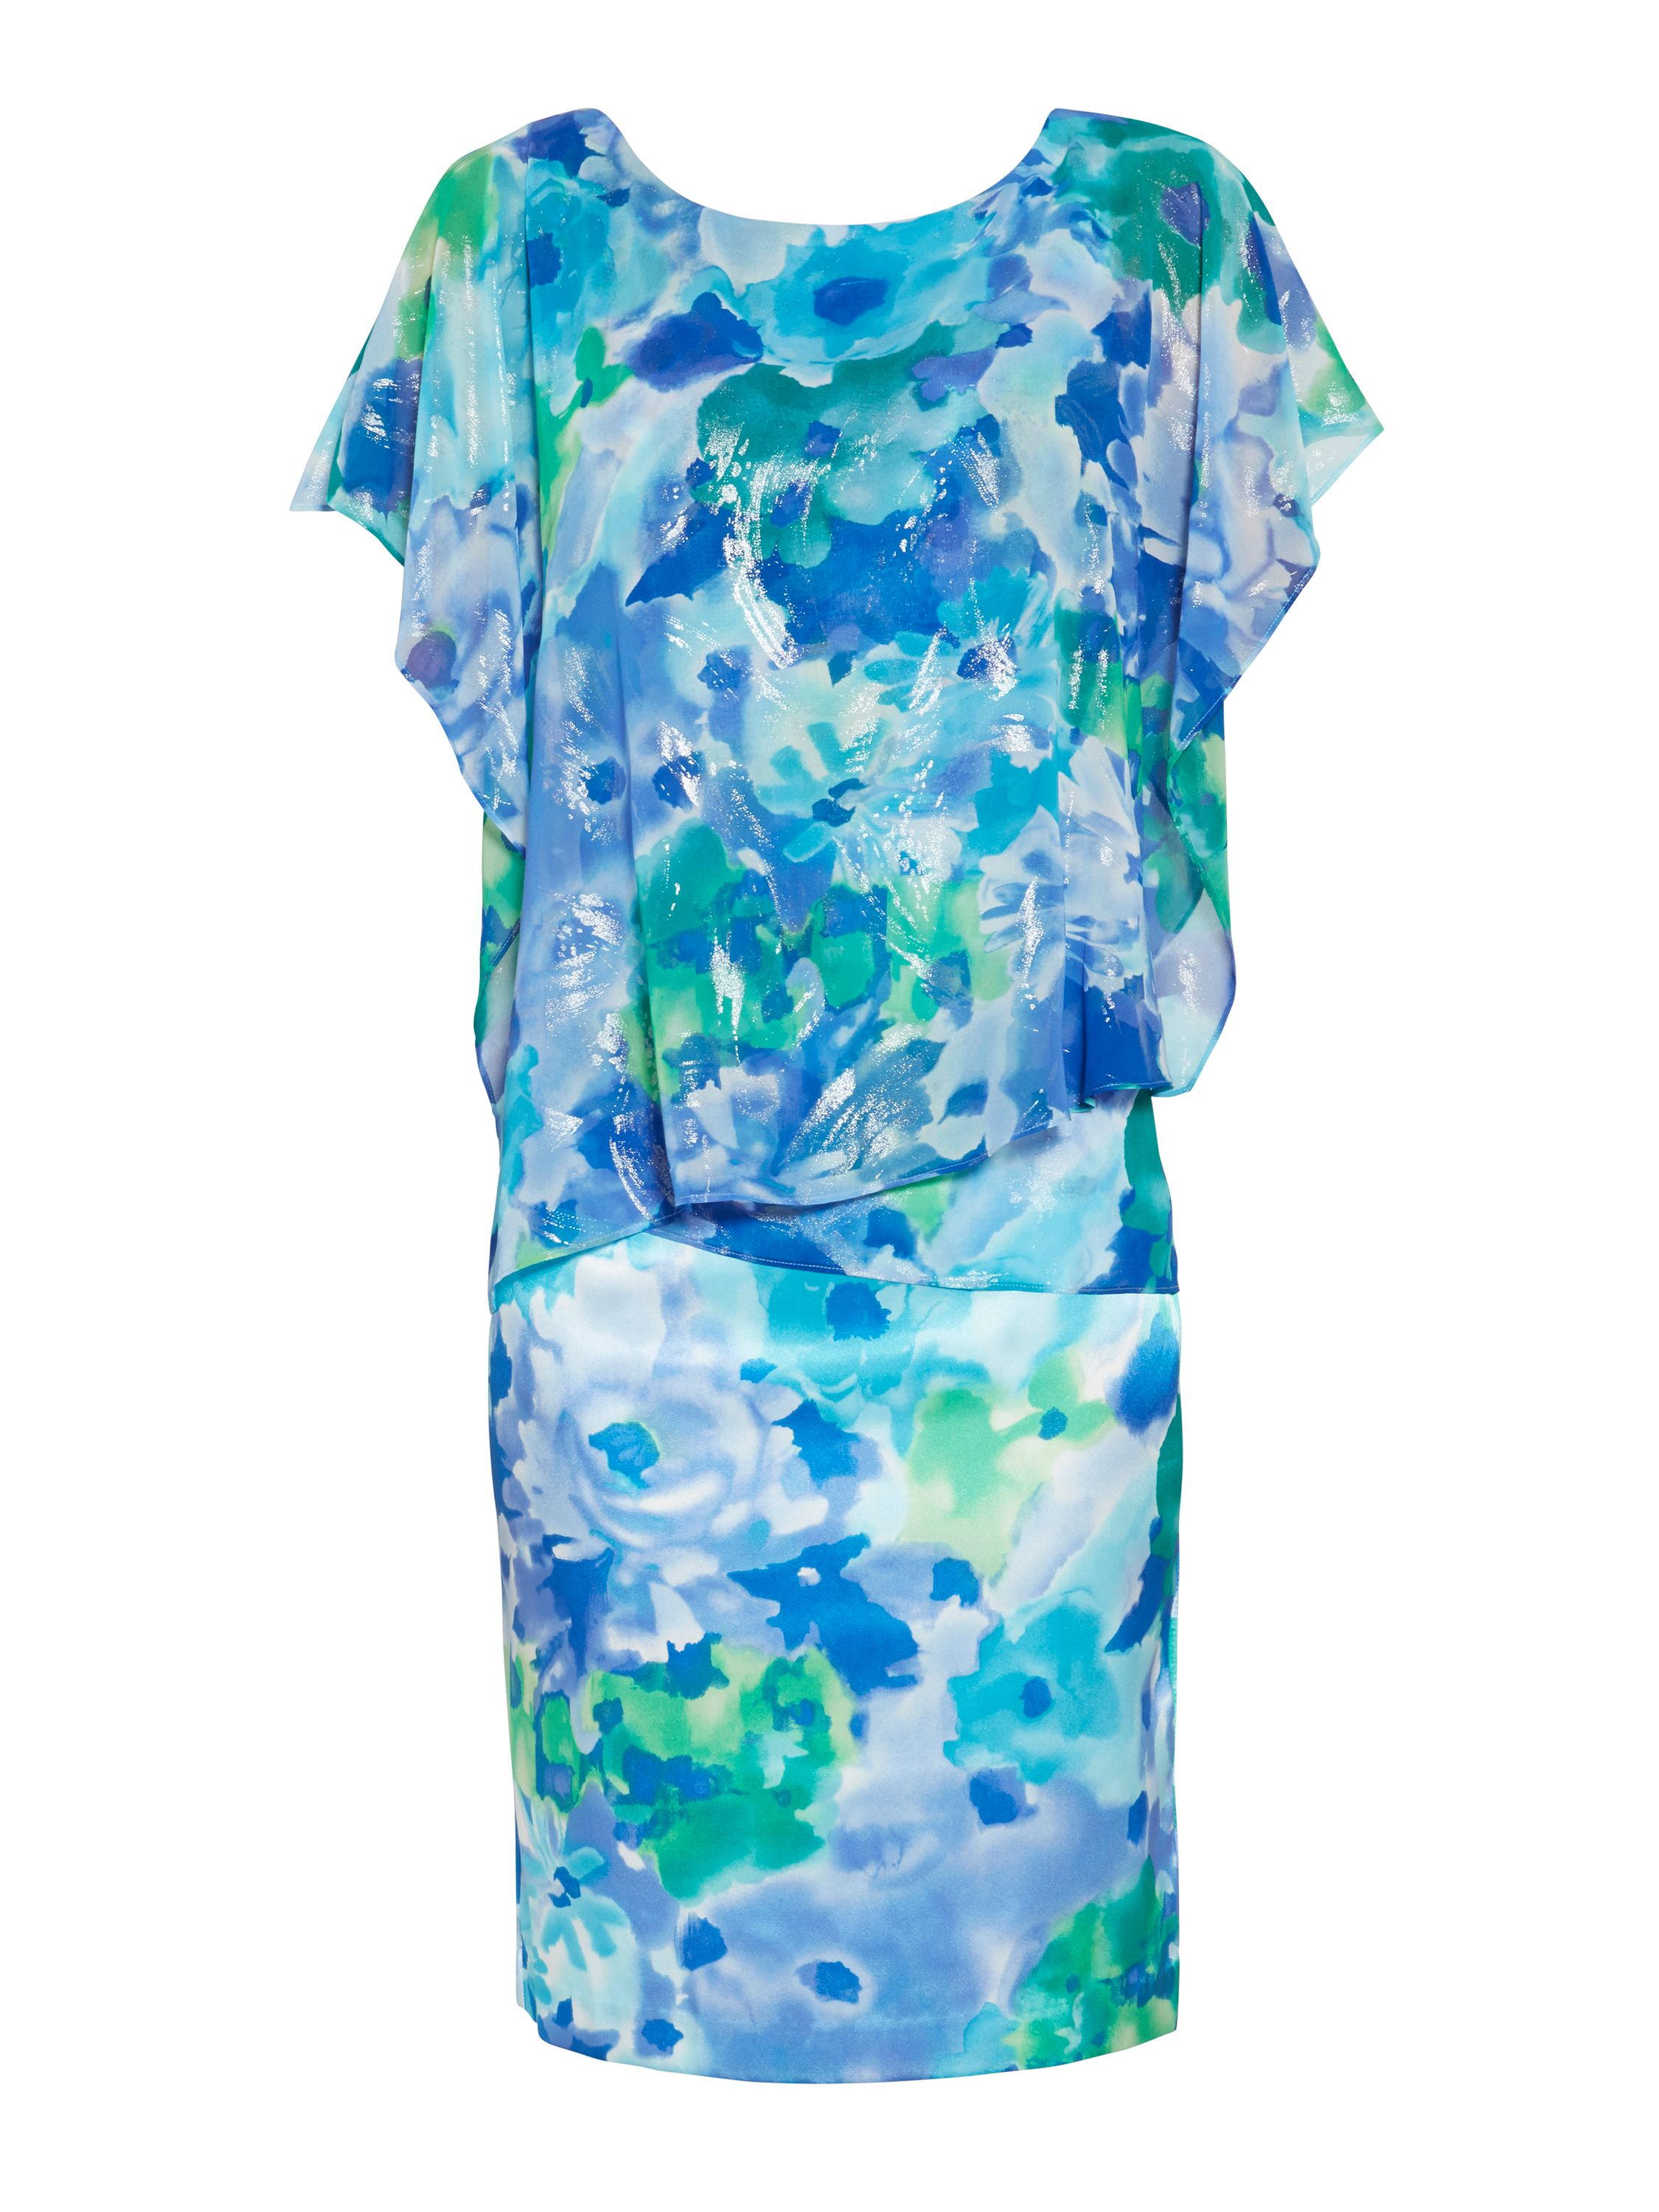 Gina Bacconi Blue green print satin and chiffon dress, Blue